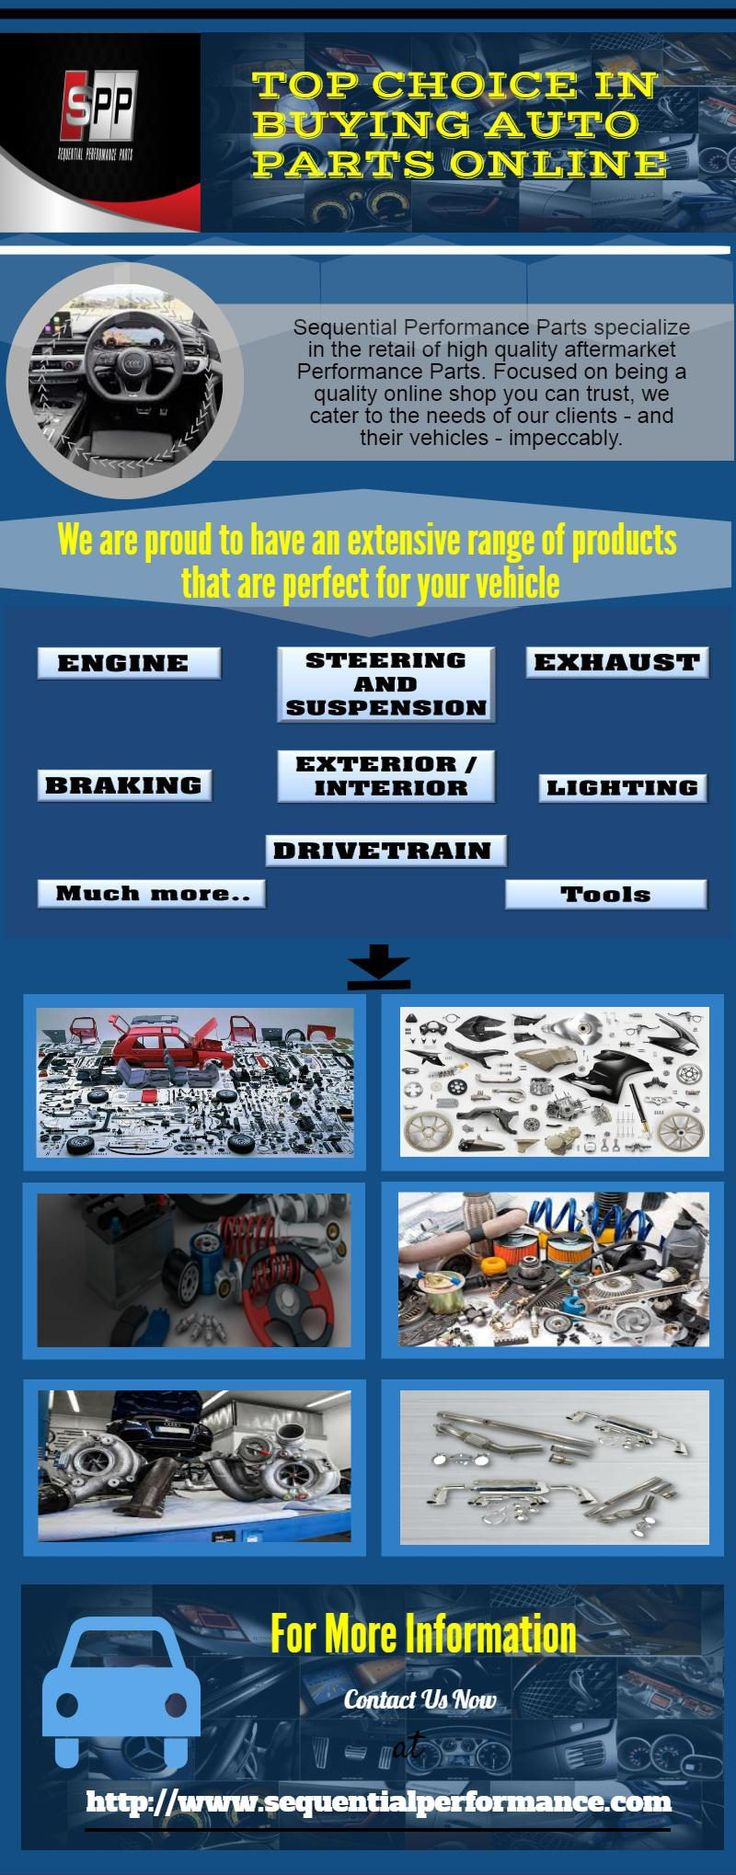 SPP Top Choice in Buying Auto Parts Online http://www.liveinfographic.com/i/spp-top-choice-in-buying-auto-parts-online/ Tags: #infographic  #infographics #popular #pinterest #pinterestinfographics